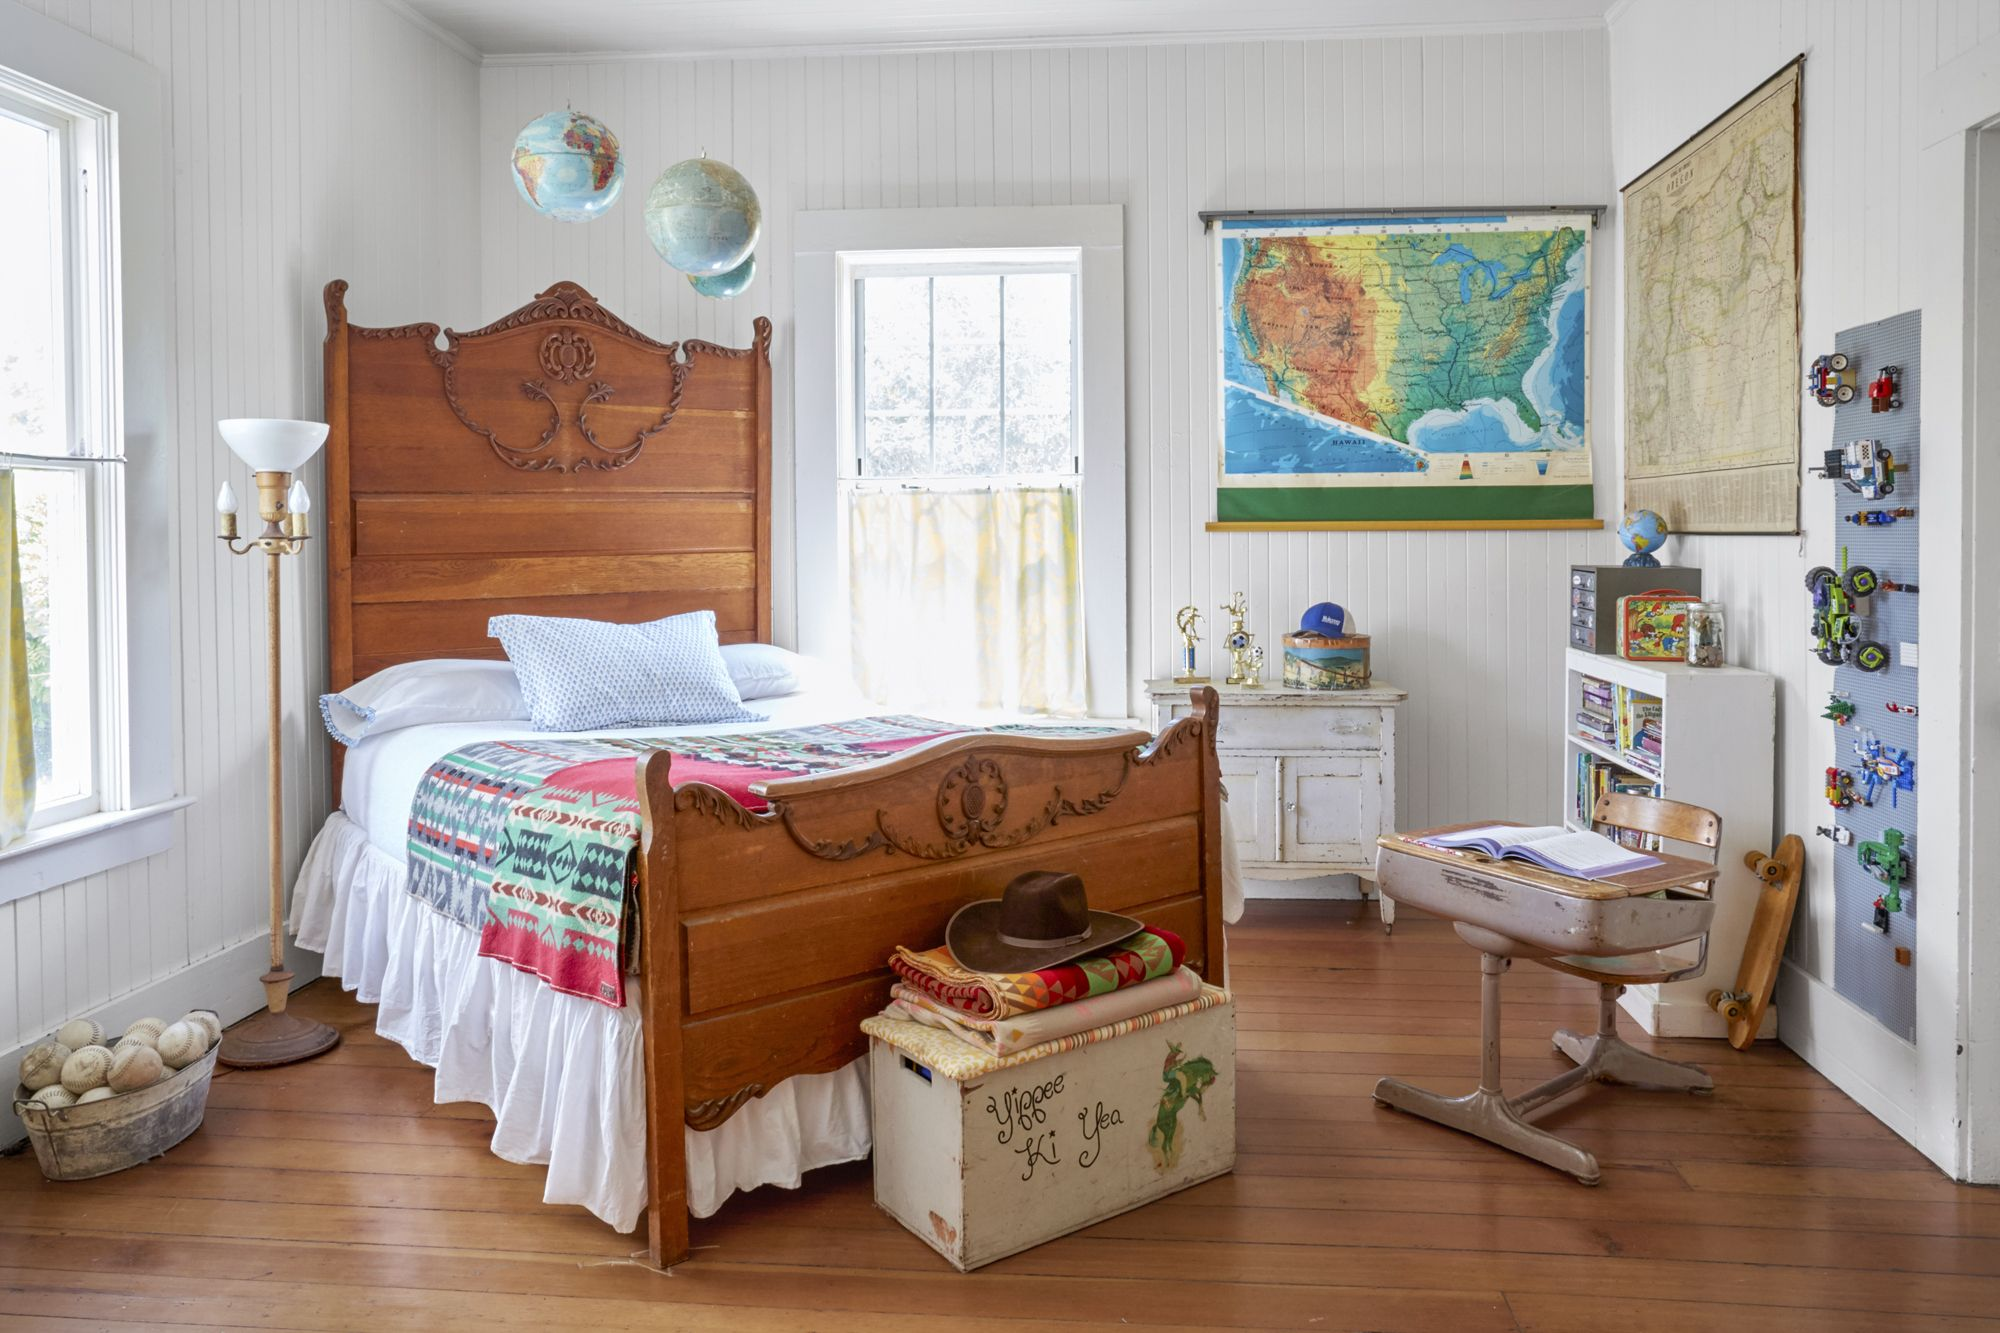 Vintage Farmhouse Bedroom Images 16 Vintage Decorating Ideas From Inside A 19th Century